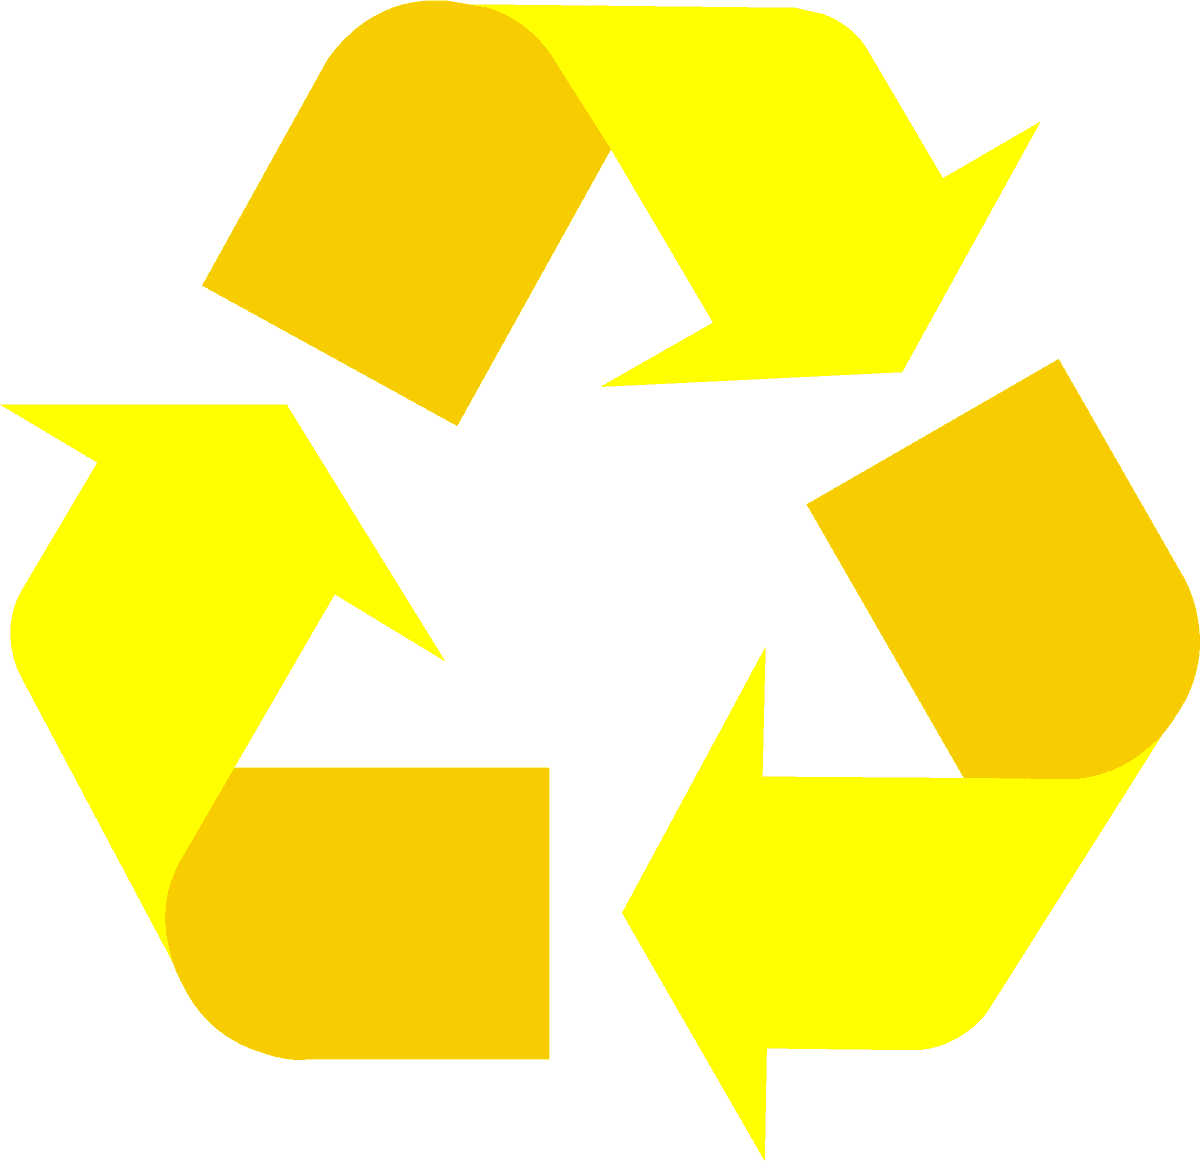 recycling-symbol-icon-twotone-yellow